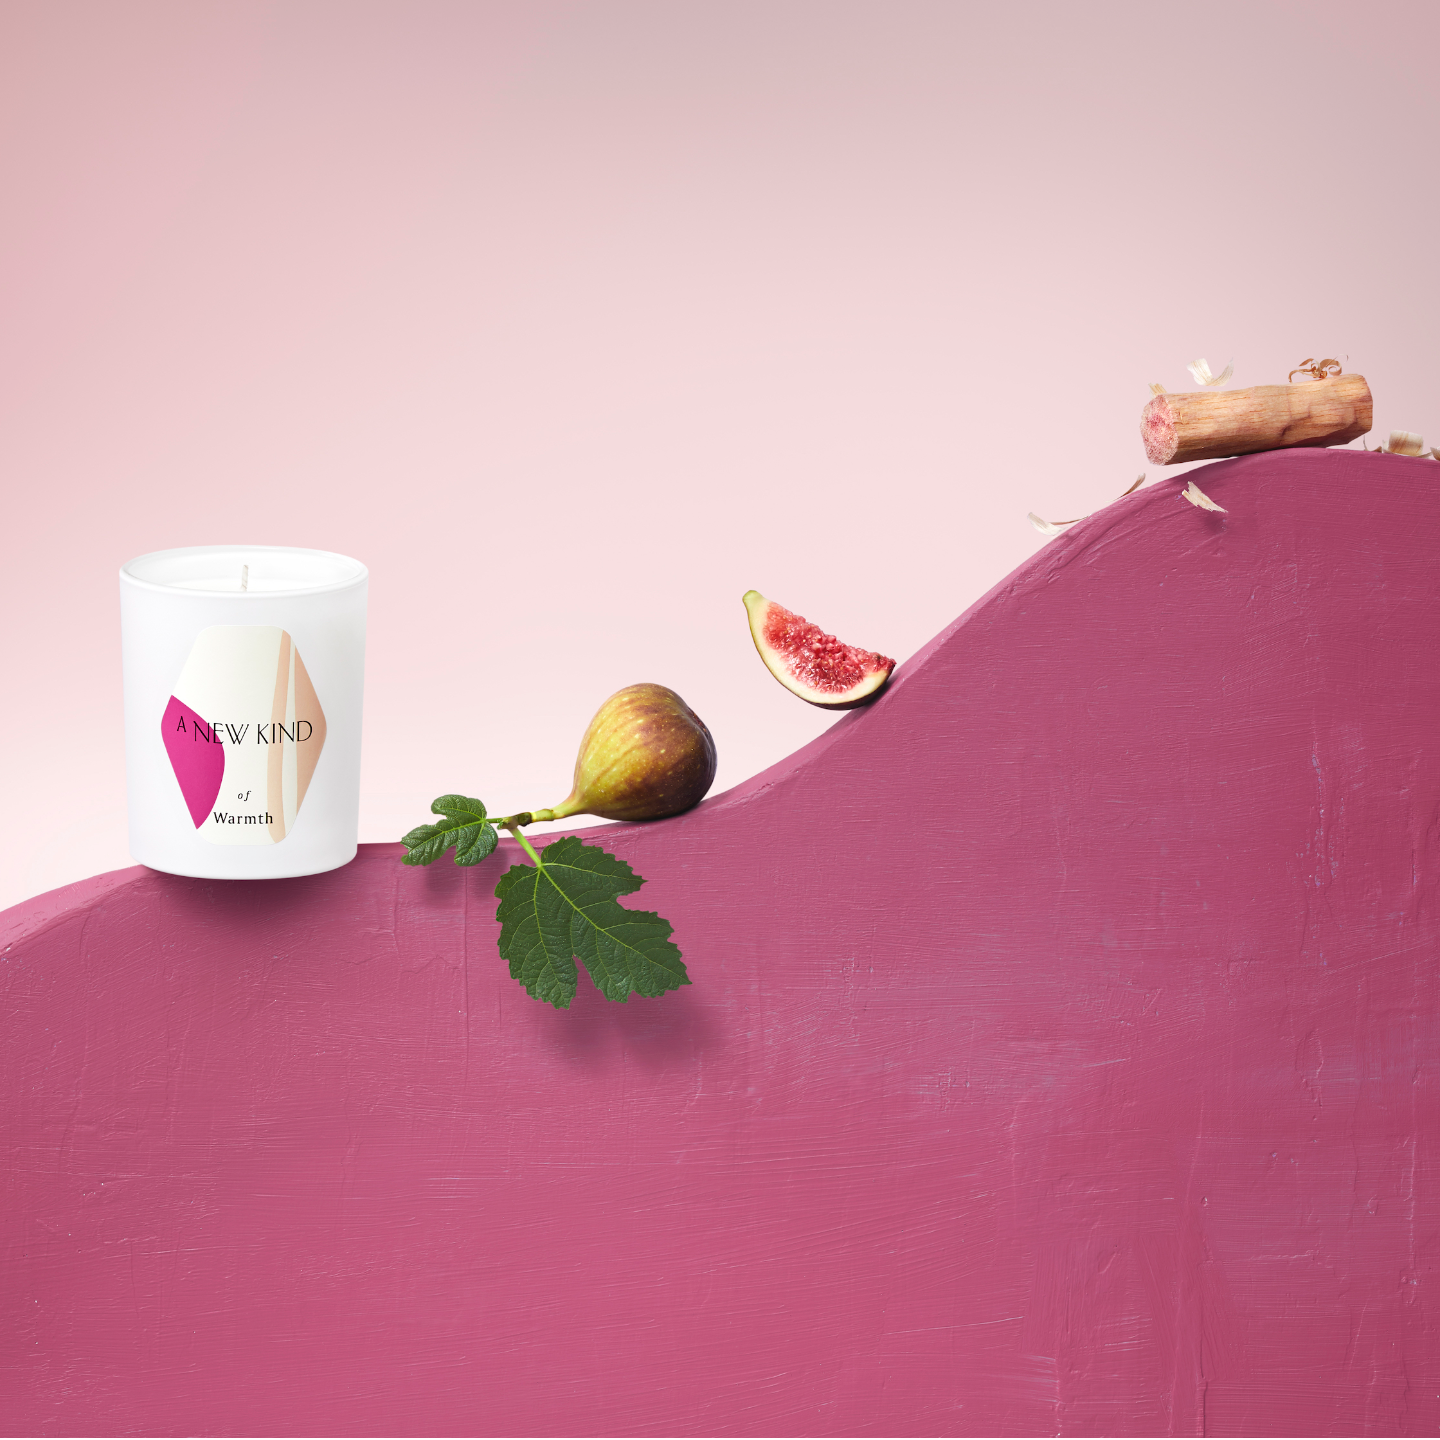 A white candle labeled with a hexagon sticker. The sticker has a white base with abstract prints in pink and beige. The words A new kind of warmth is printed on it.